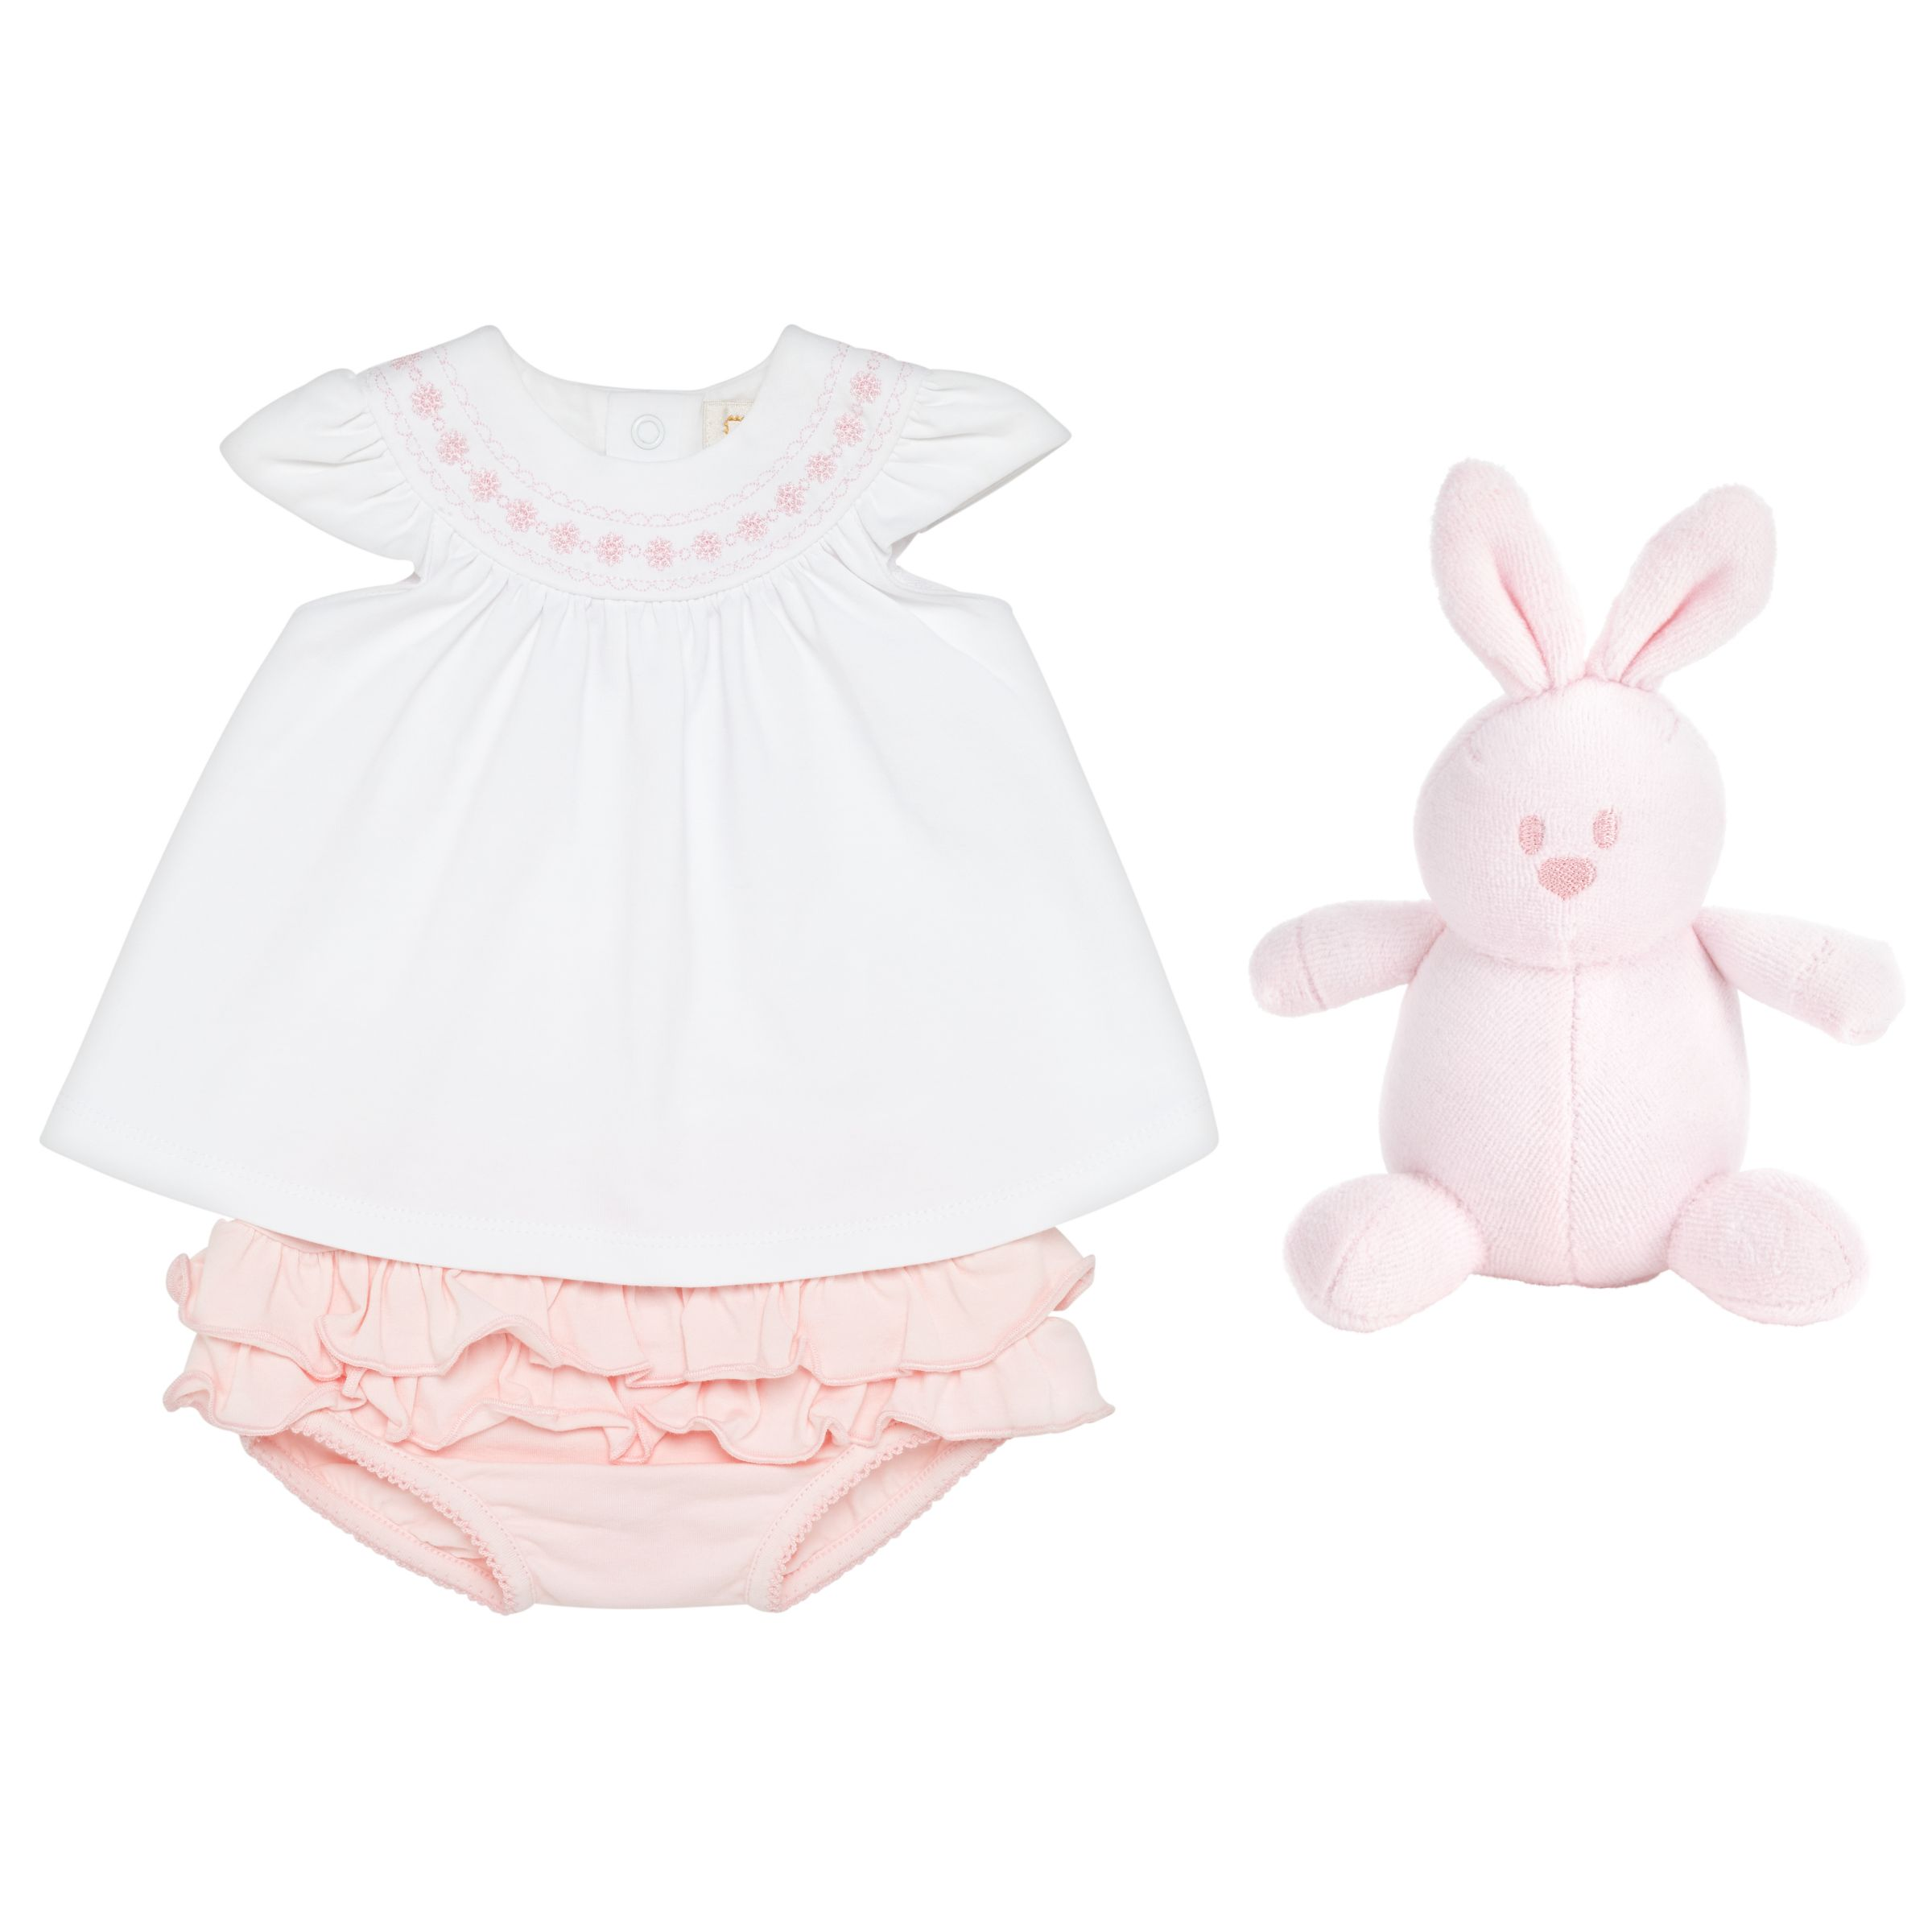 Emile et Rose Emile et Rose Baby Kate Two Piece Top and Short Set, White/Pink